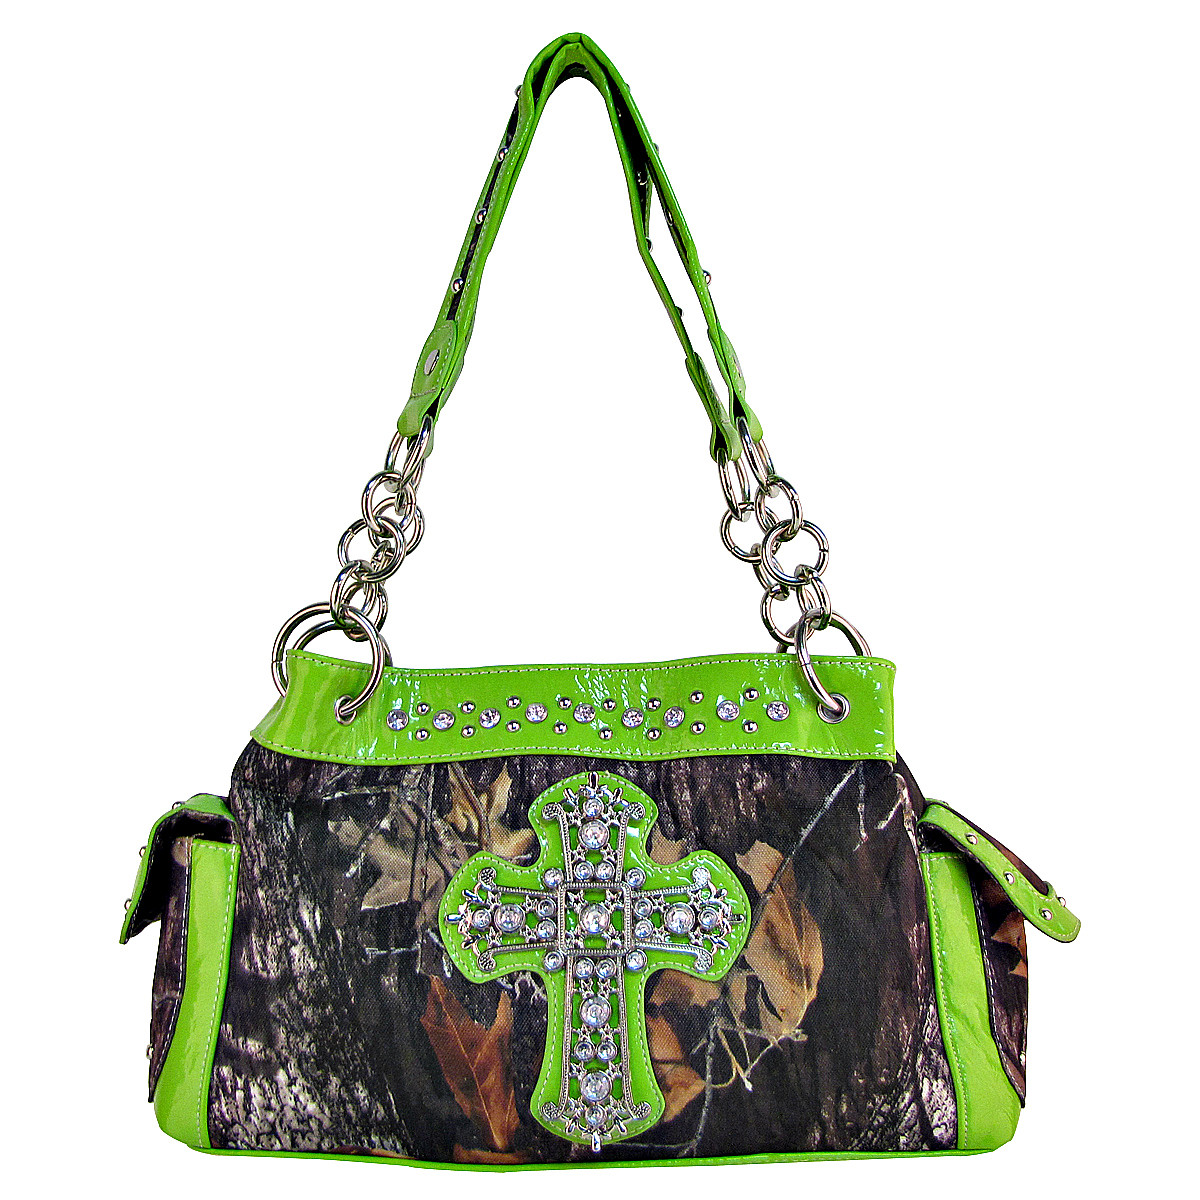 GREEN RHINESTONE MOSSY CAMO LOOK CROSS SHOULDER HANDBAG HB1-C-321-2GRN